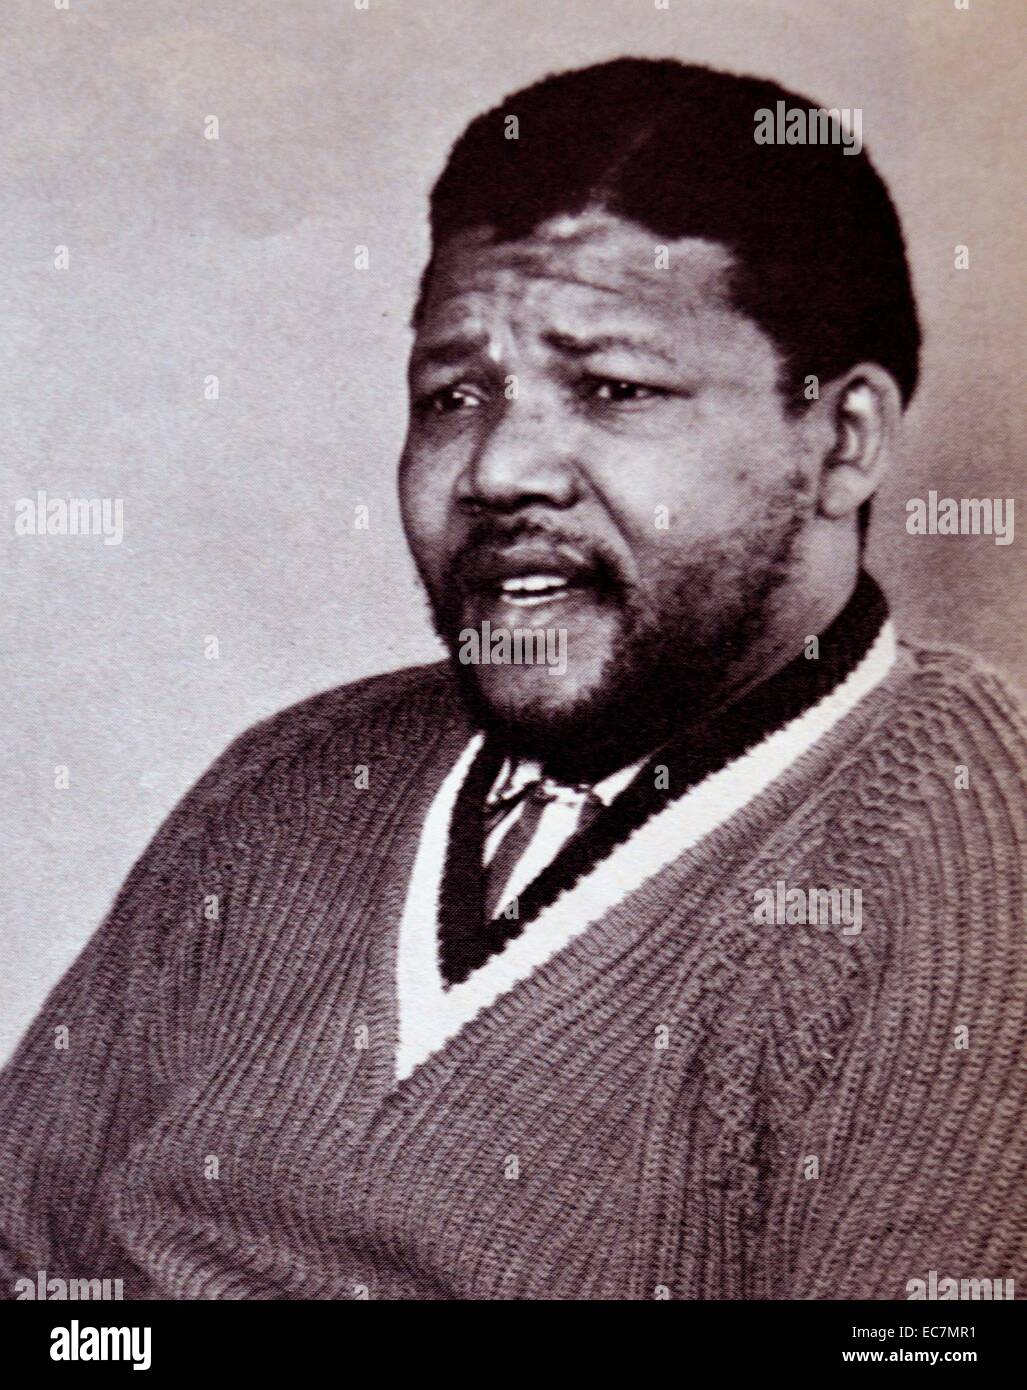 biography of nelson mandela the south african anti apartheid revolutionary politician and philanthro Nelson rolihlahla mandela was a south african anti-apartheid revolutionary, politician, and philanthropist who served as president of south africa from 1994 to 1999 he was the country's first black chief executive, and the first elected in a fully representative democratic election.